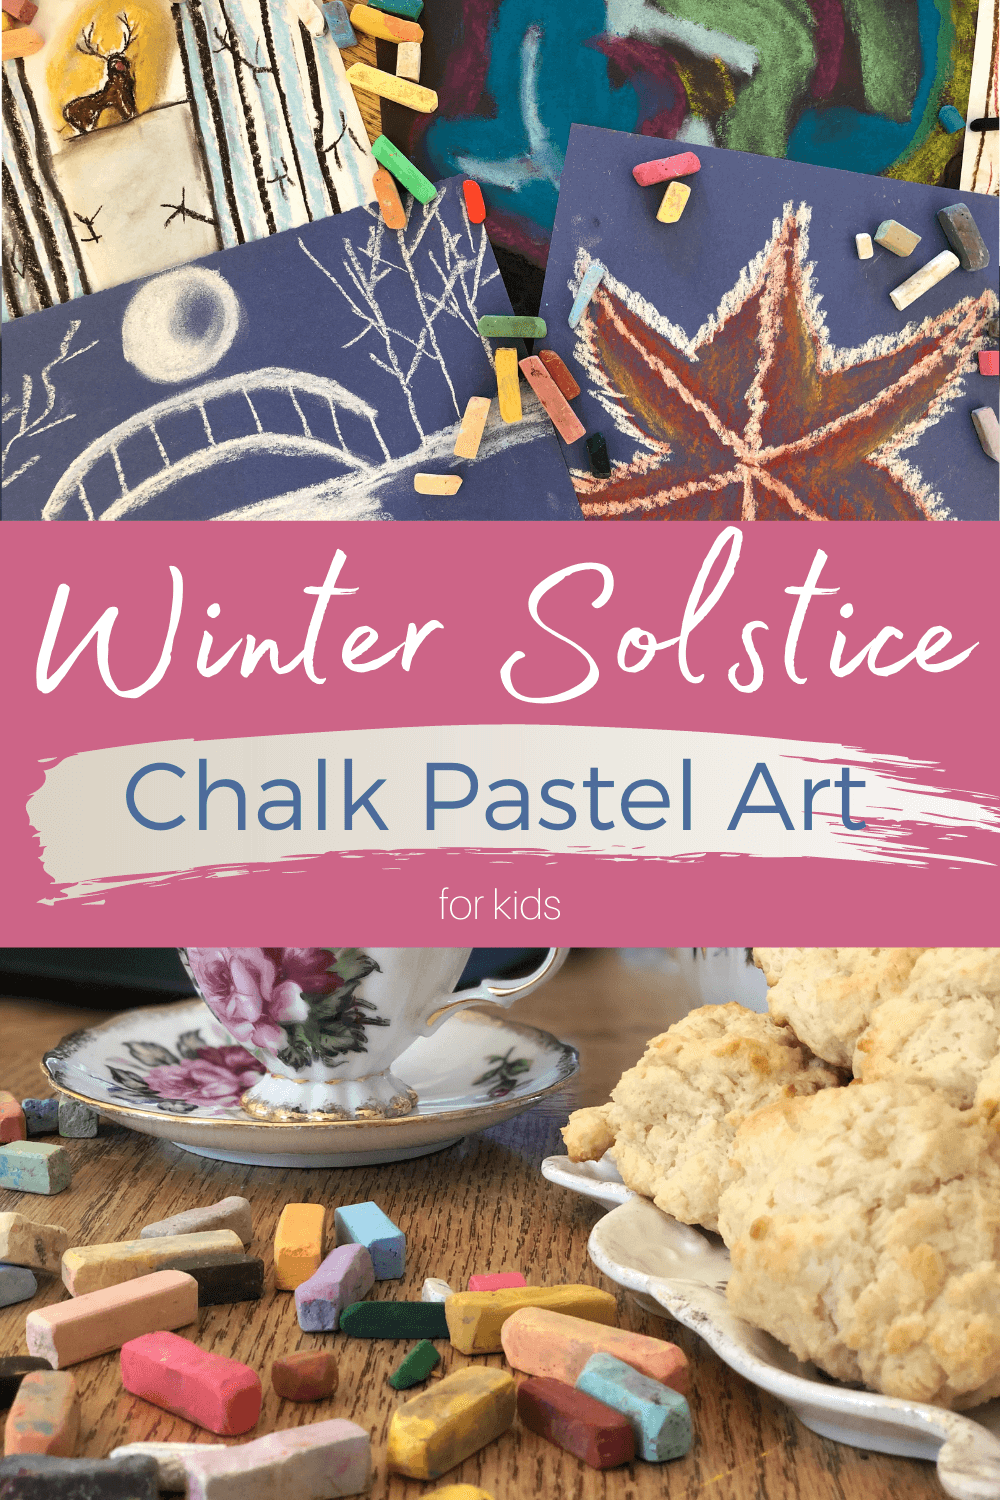 Winter Solstice Chalk Pastel Art: Kids will love making winter solstice chalk pastel art with the You ARE An Artist clubhouse. Chalk pastels are perfect for any age and celebrating the winter solstice just got easier! #YouAREAnArtist #chalkpastels #wintersolstice #winterart #artforkids #wintersolsticeart